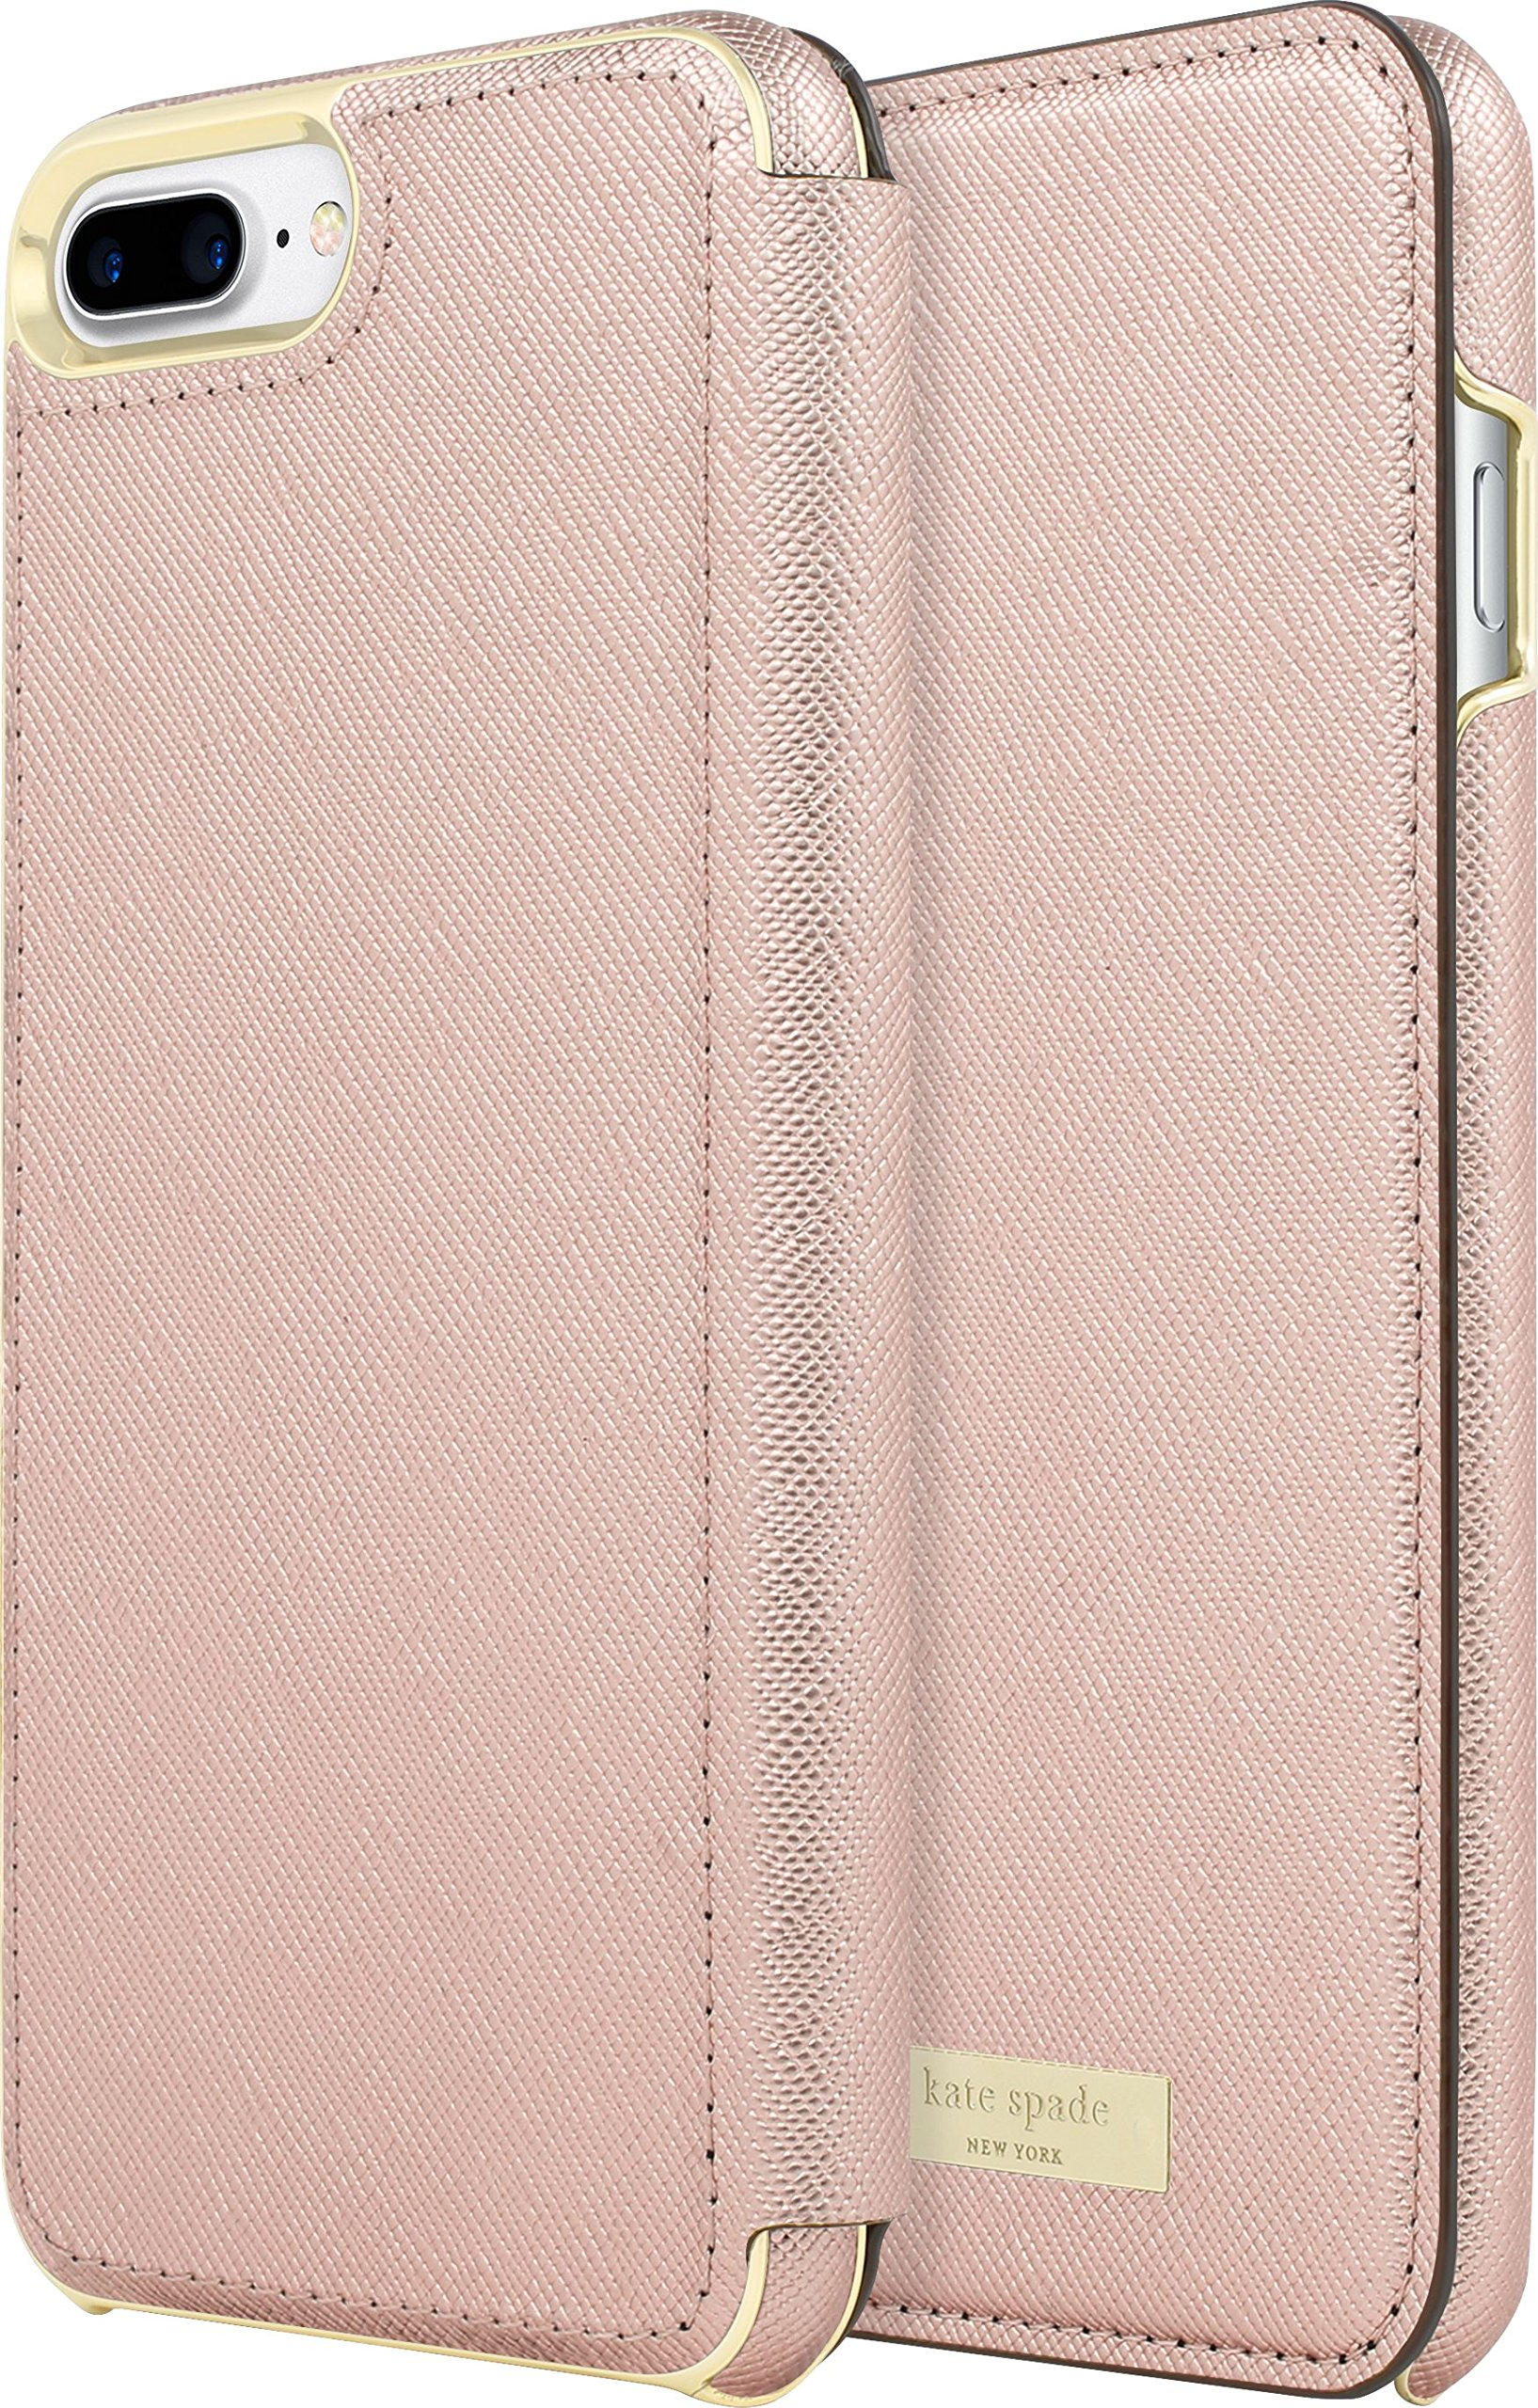 kate spade new york Protective Folio Case for iPhone 7 Plus - Saffiano Rose Gold with Logo Plate